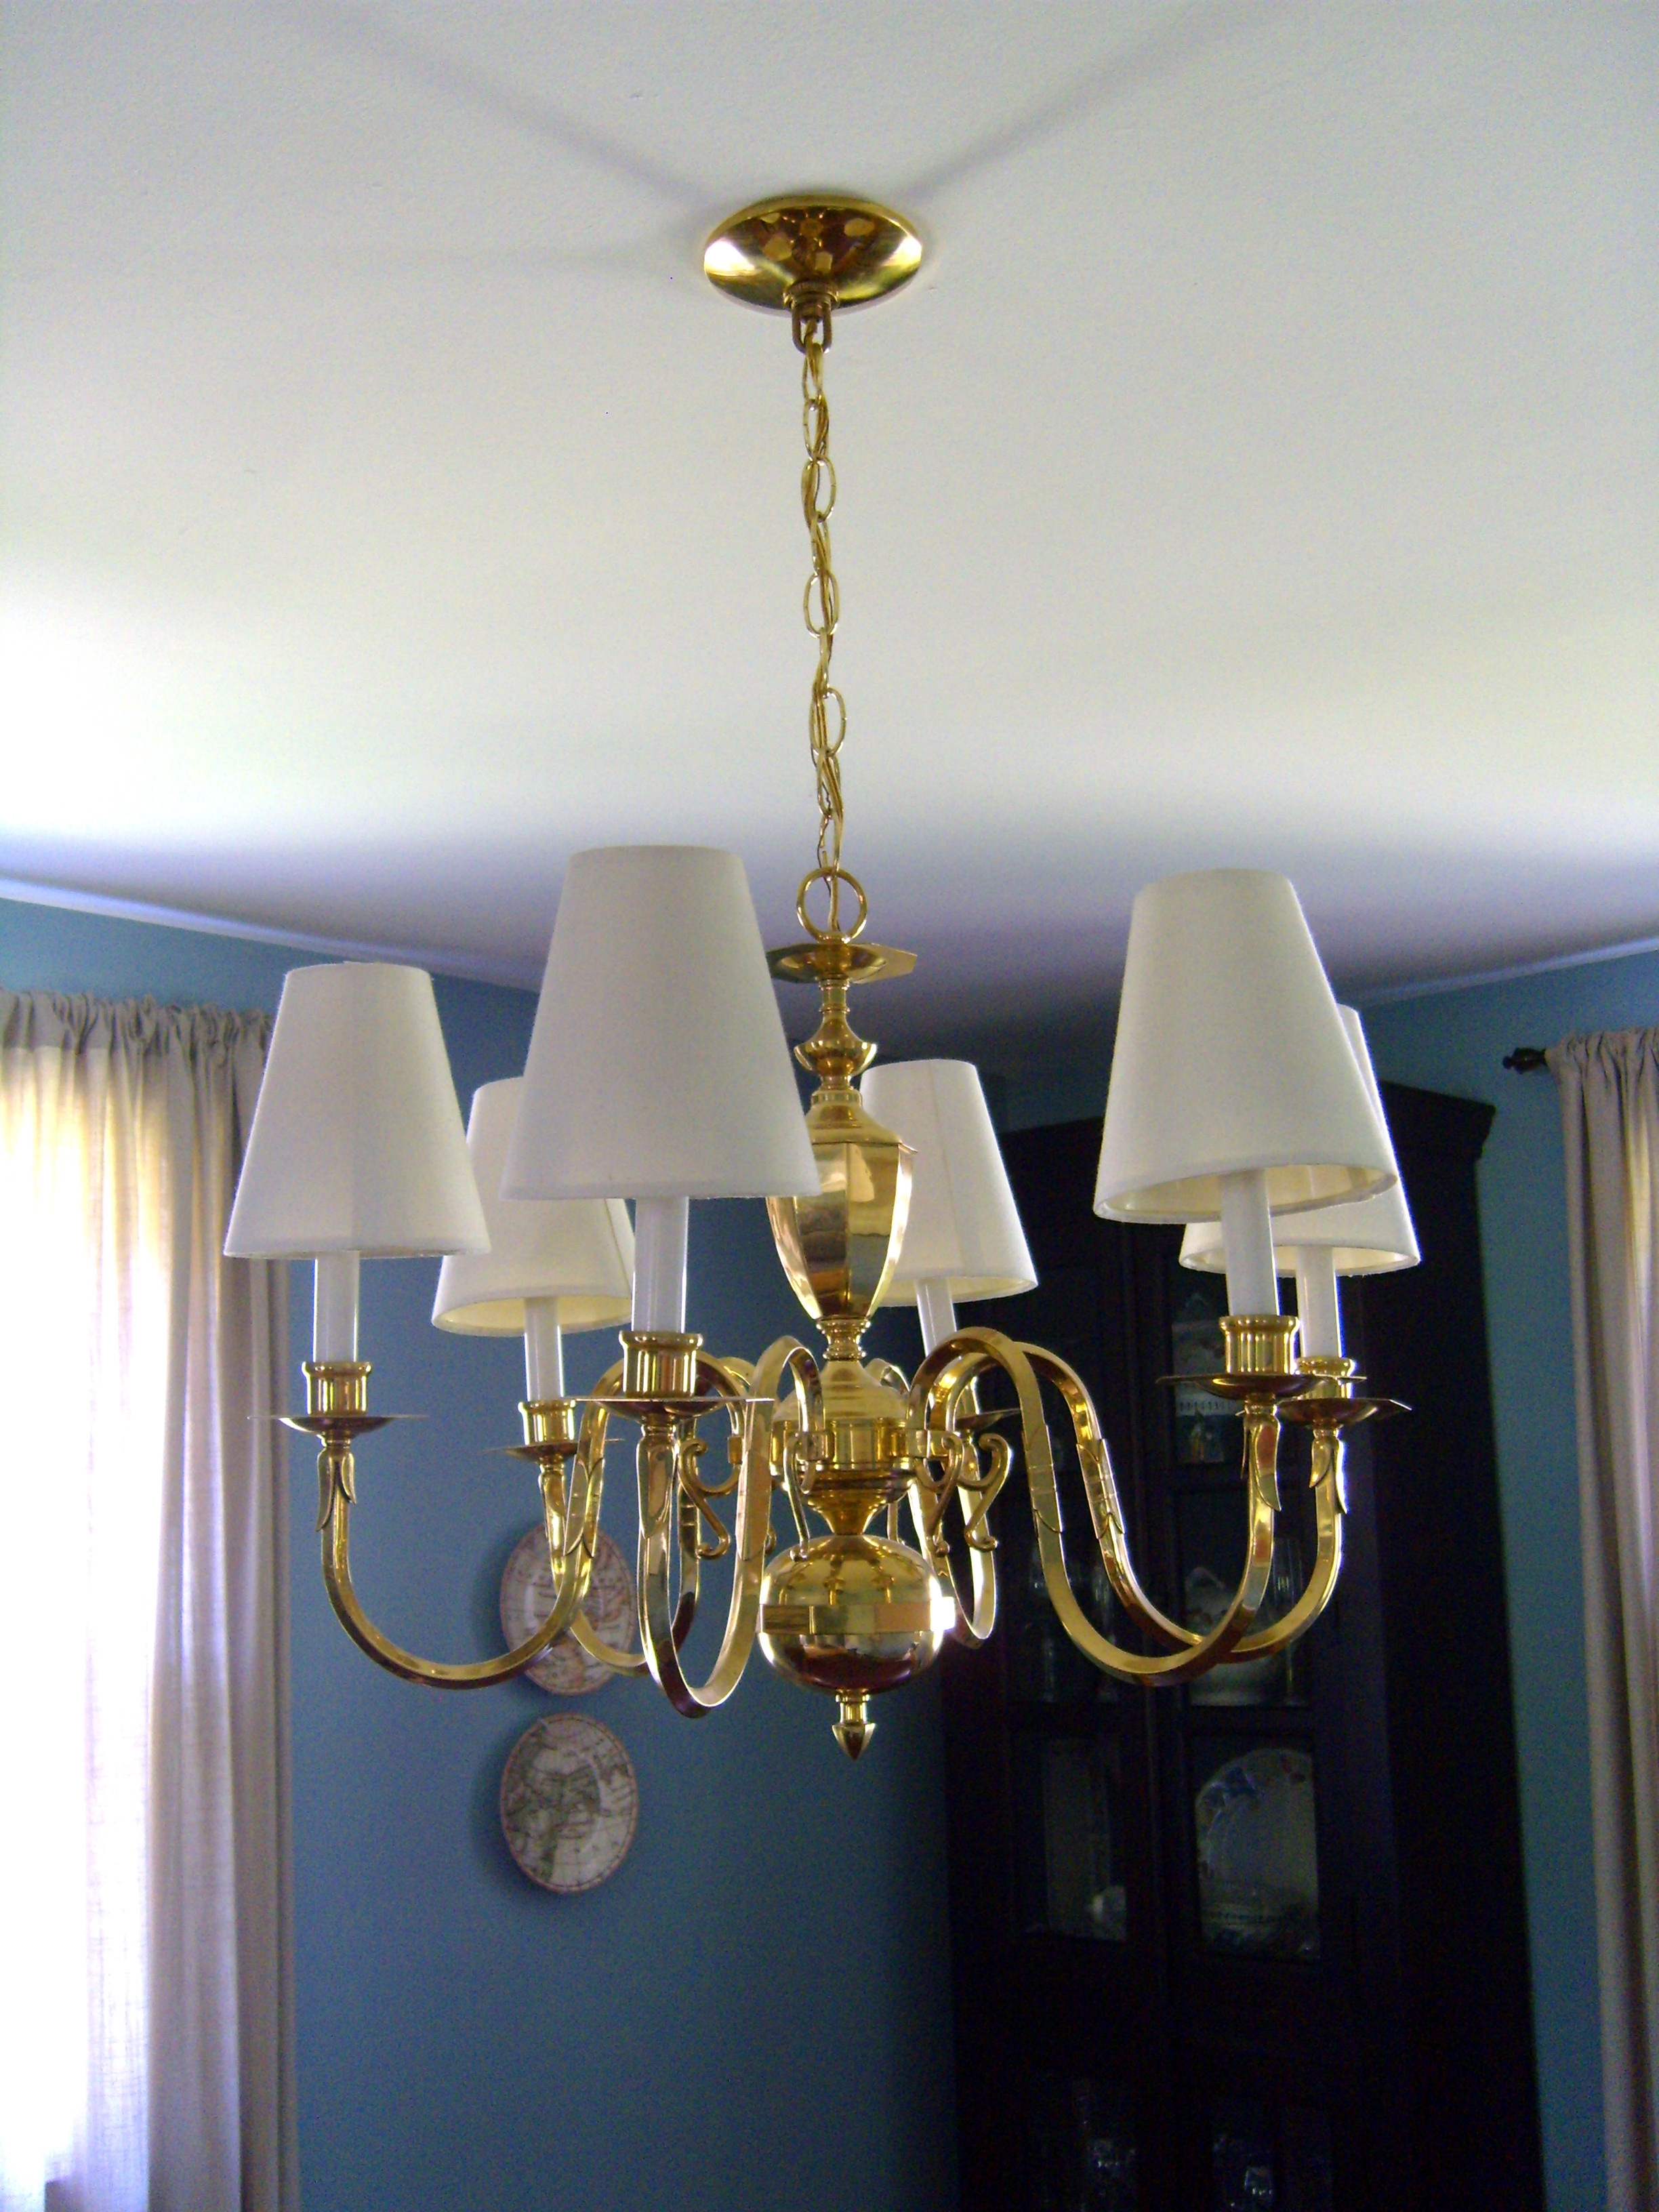 Chandelier Lampshades Pertaining To Most Current Furniture : Small Drum Lamp Shades Chandelier Saving Space Mini (View 4 of 15)